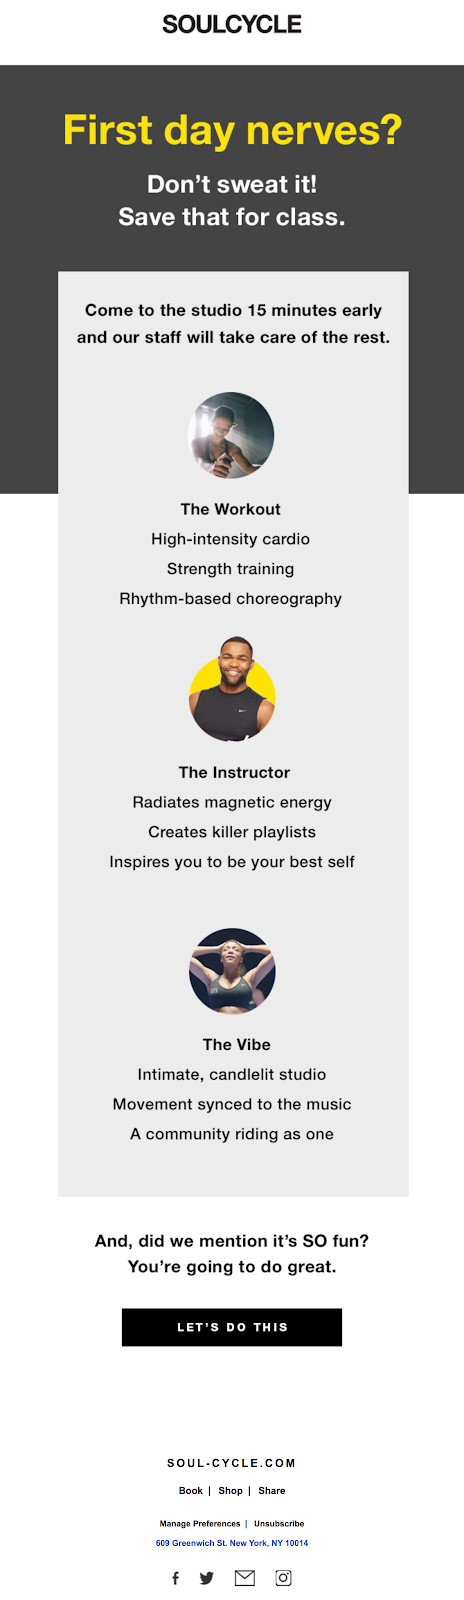 soucycle first day nerves email